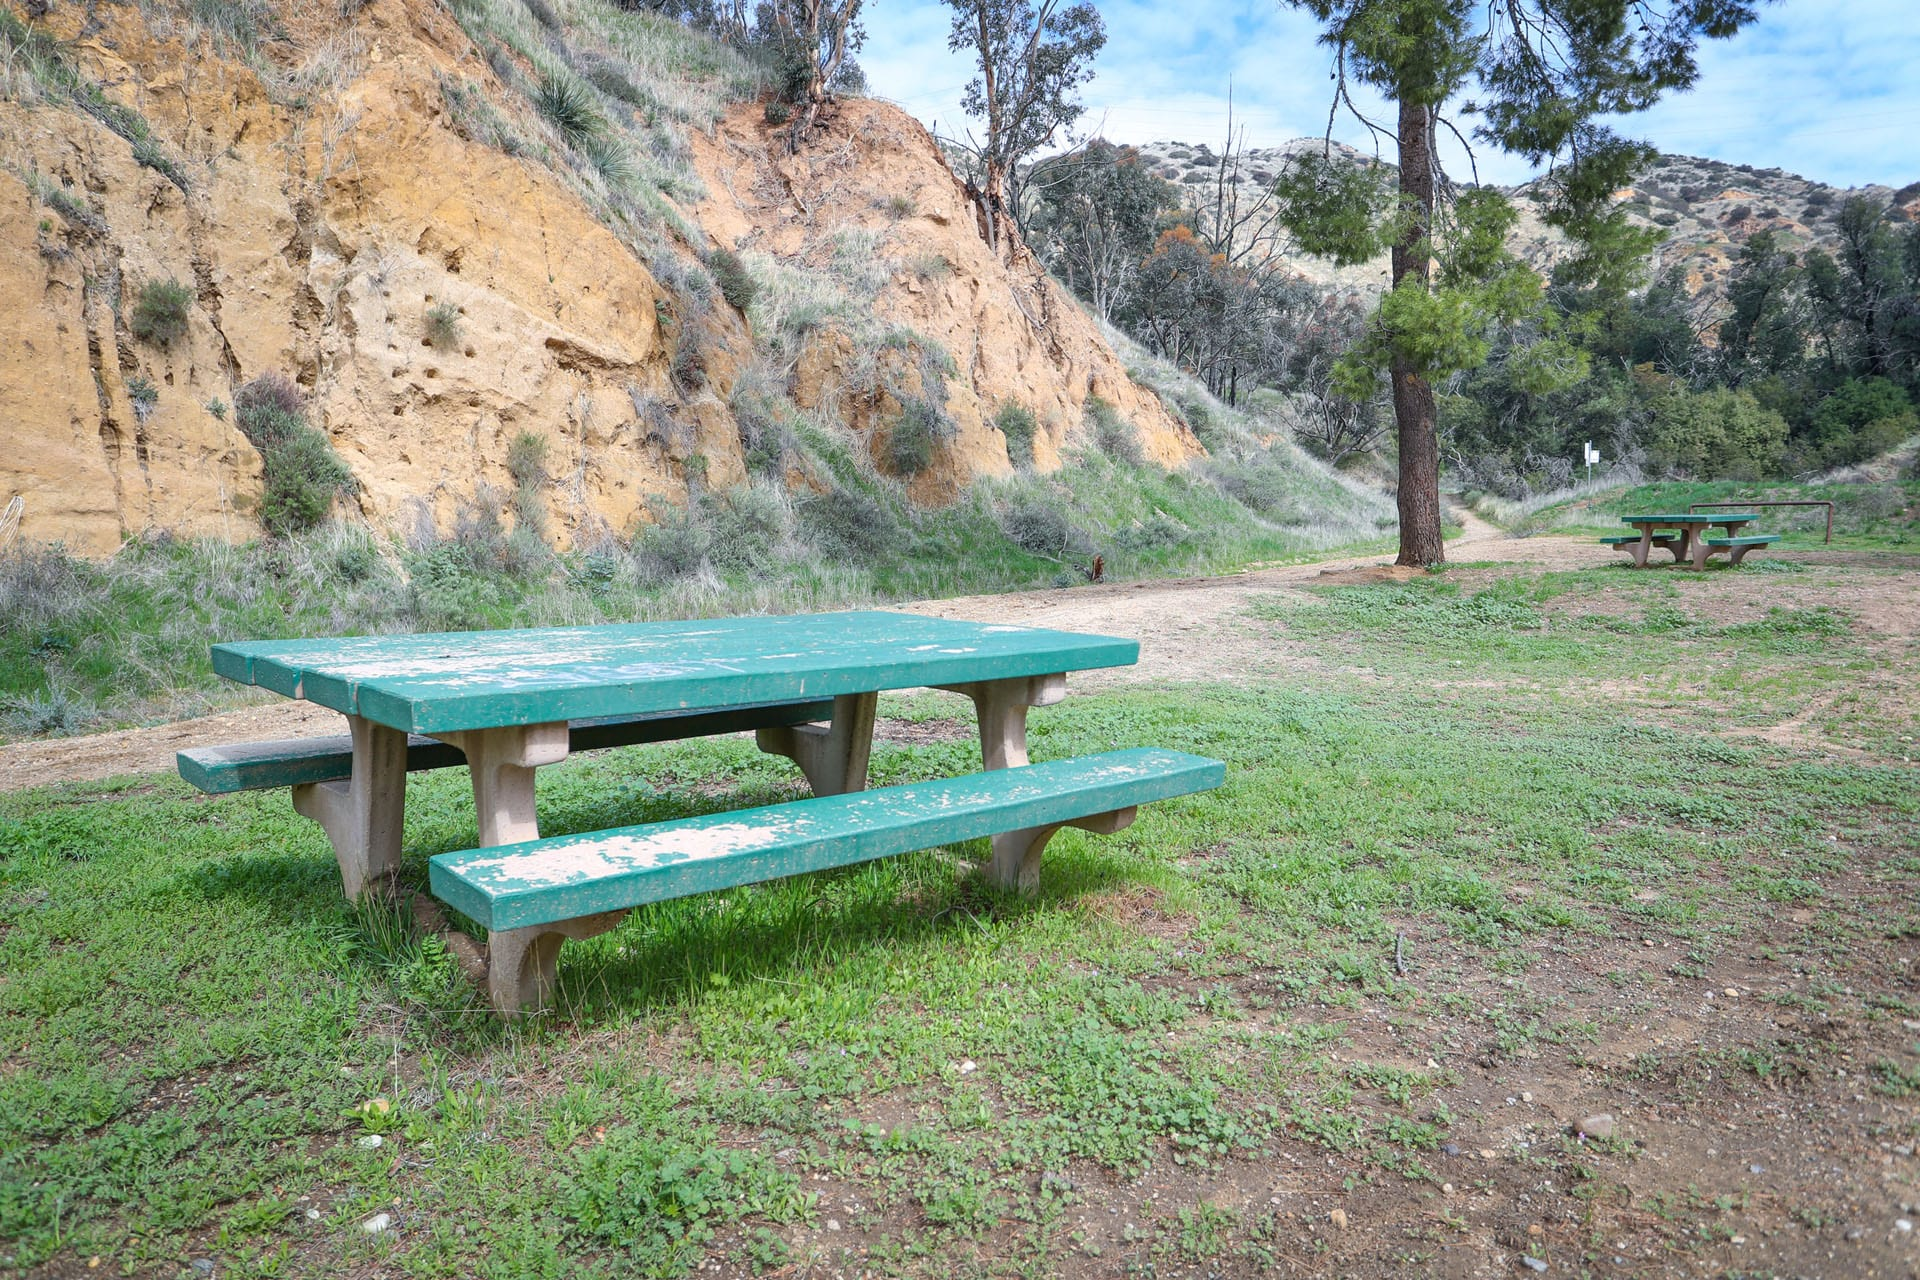 Picnic table with hill and tree in the background